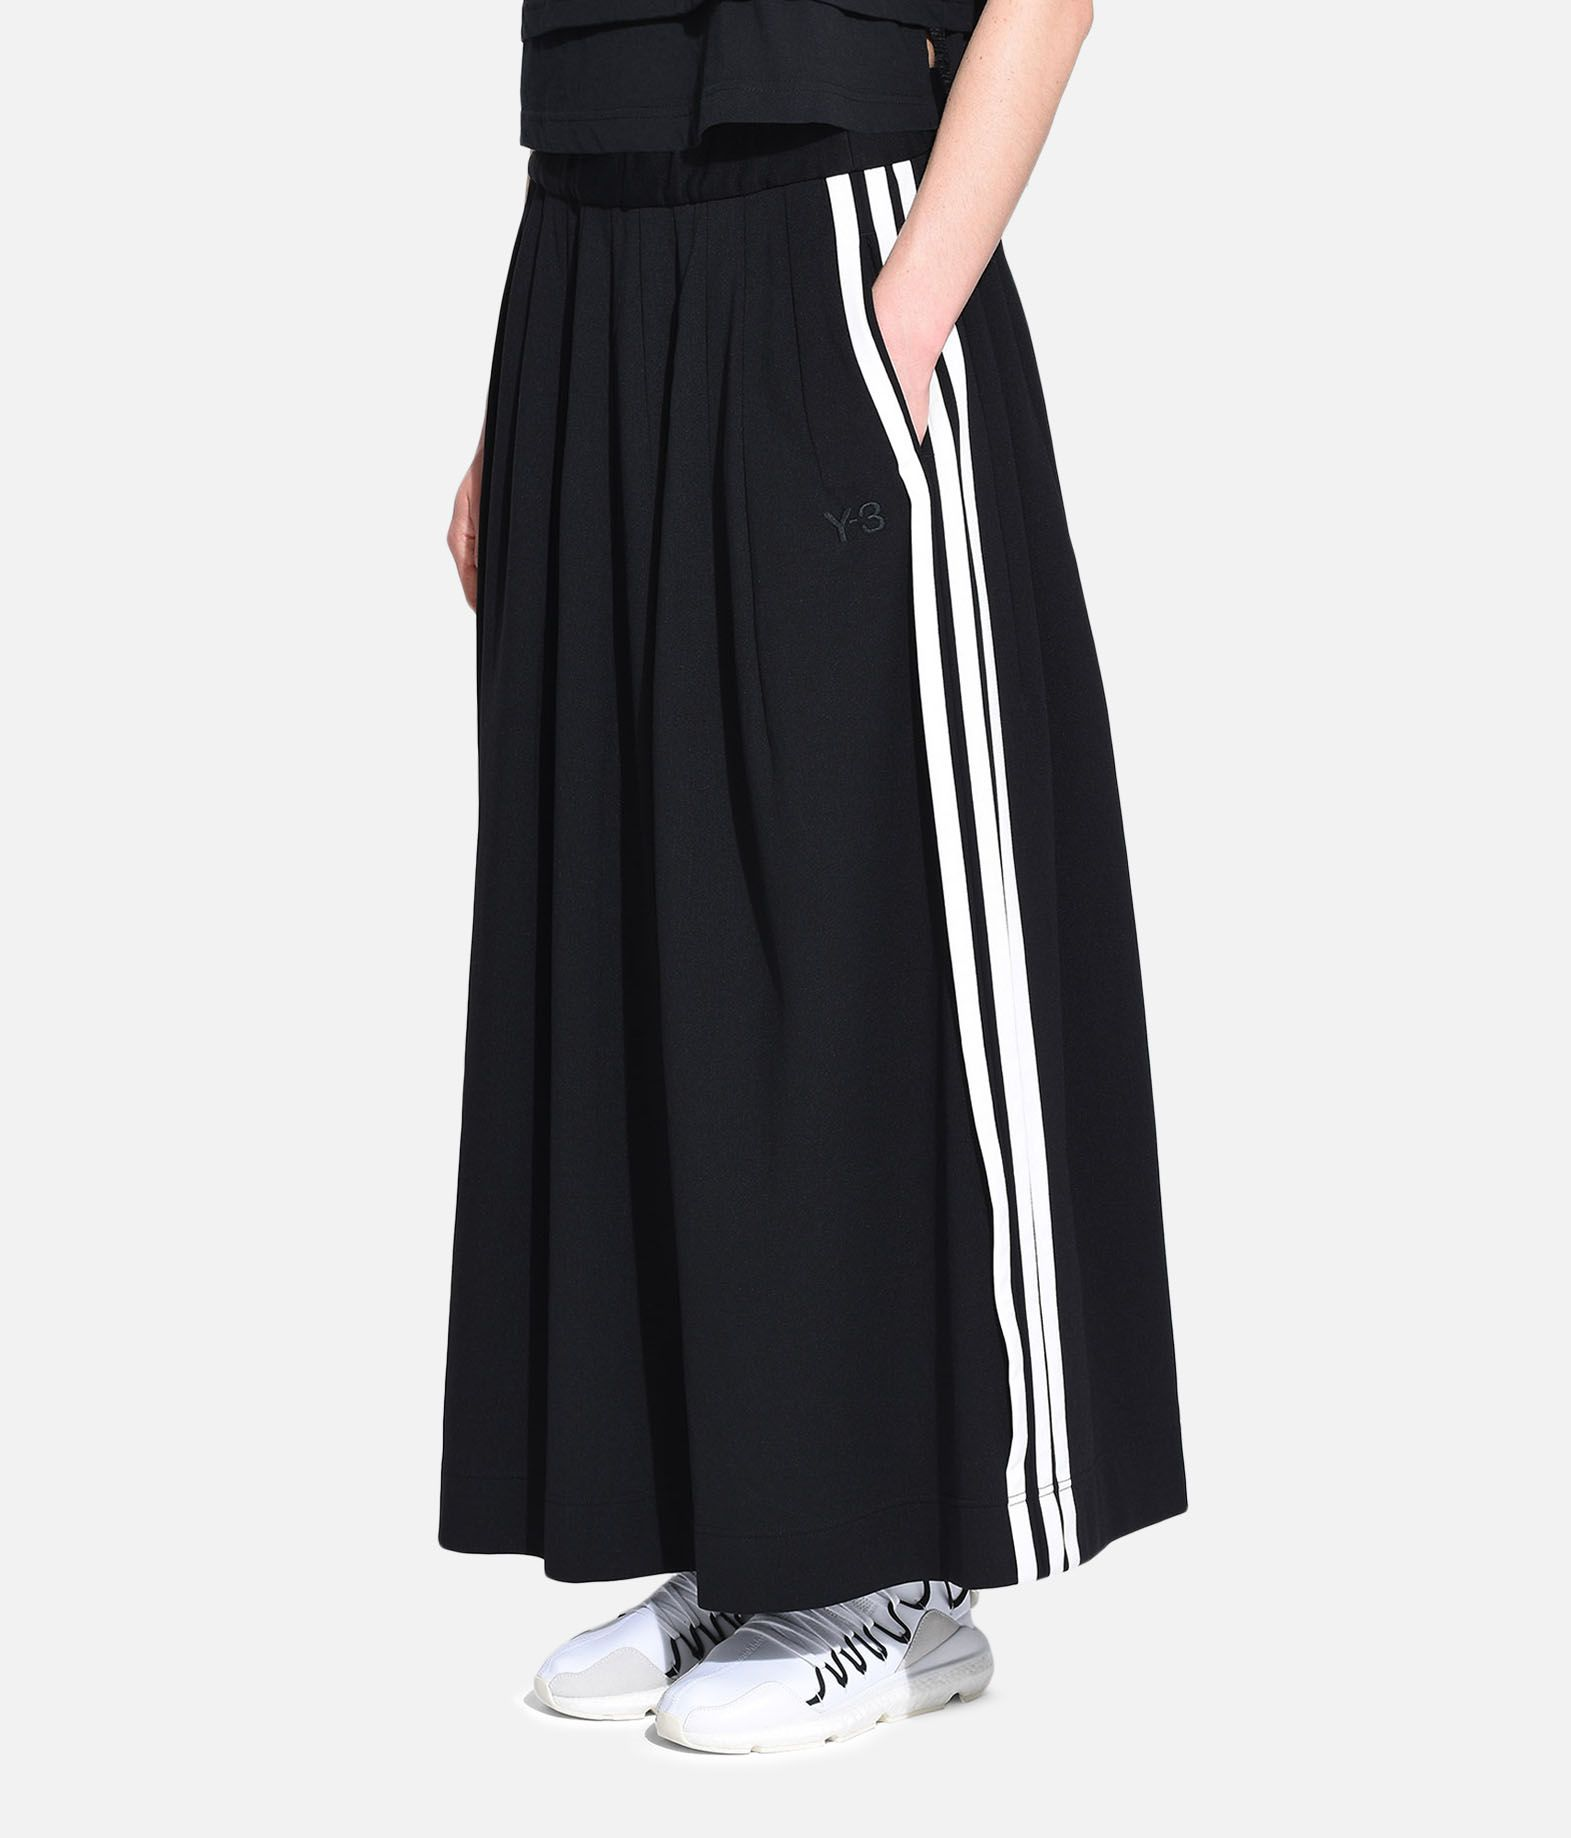 Y-3 Y-3 3-Stripes Selvedge Matte Track Skirt Knee length skirt Woman e